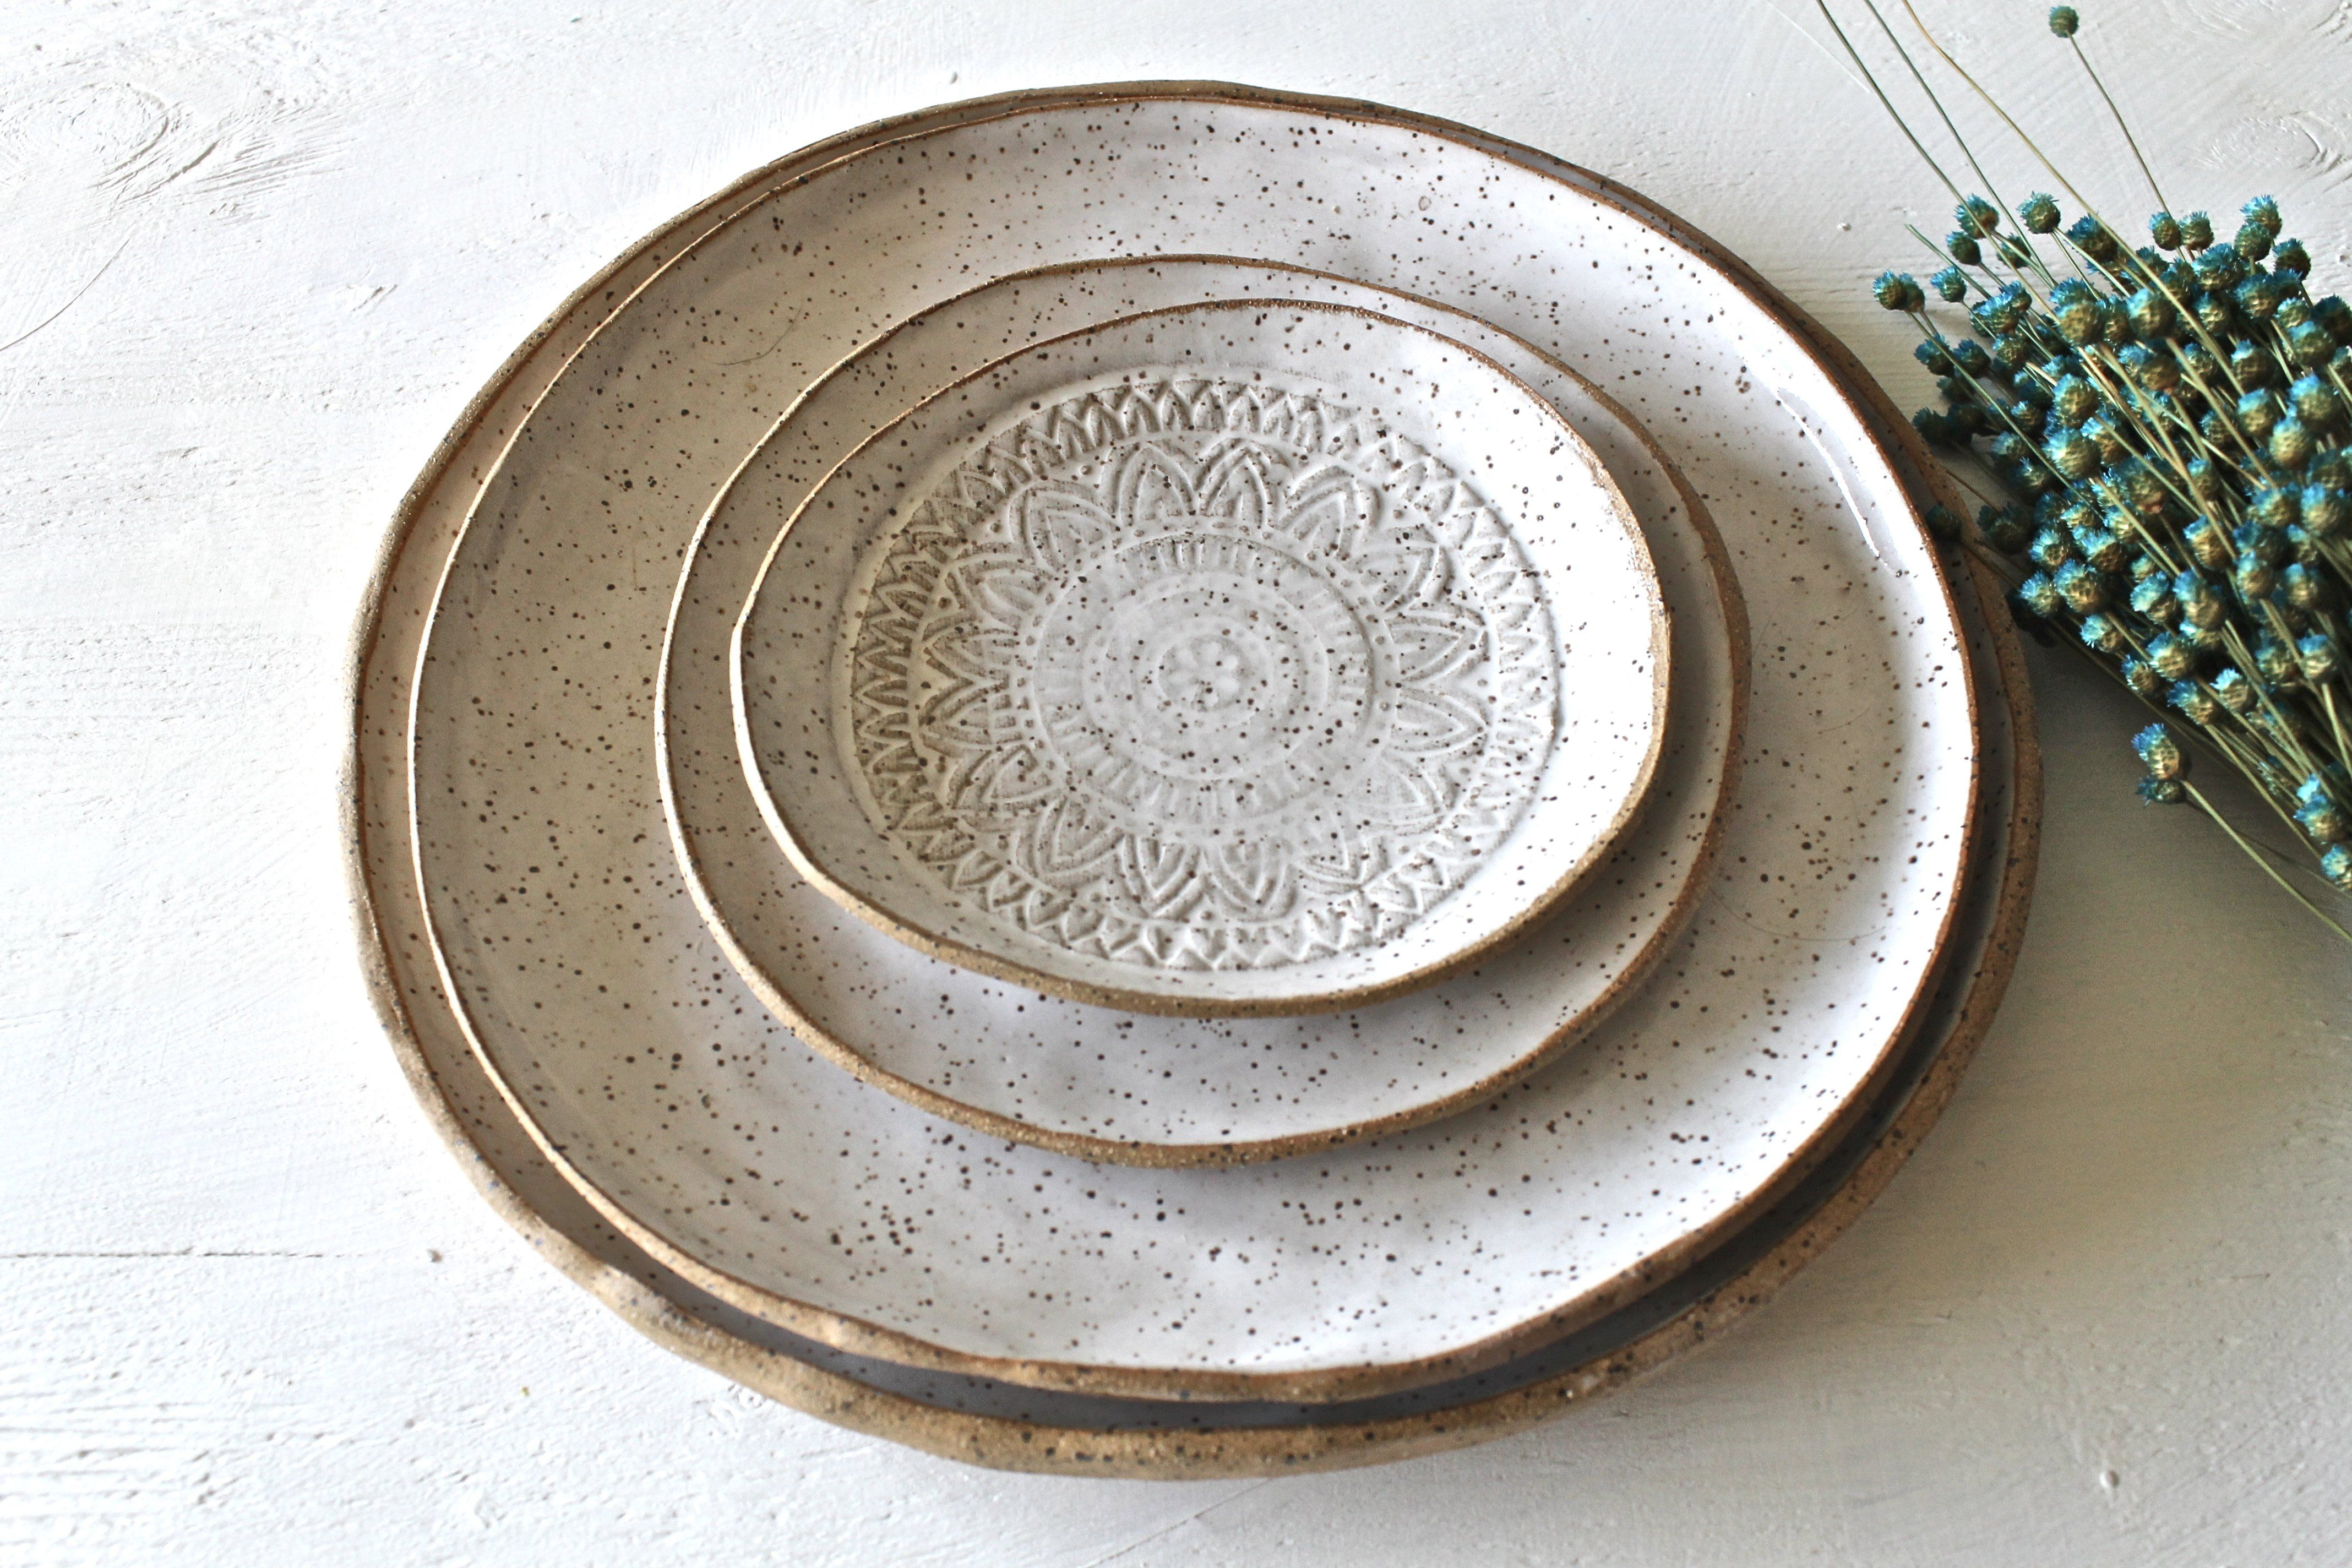 Hand Formed Stoneware Dinnerware Plates Set Of 4 Hand Painted In A Speckled White Glossy Glaze The Outside Of Thes Stoneware Dinnerware Pottery Plates Plates